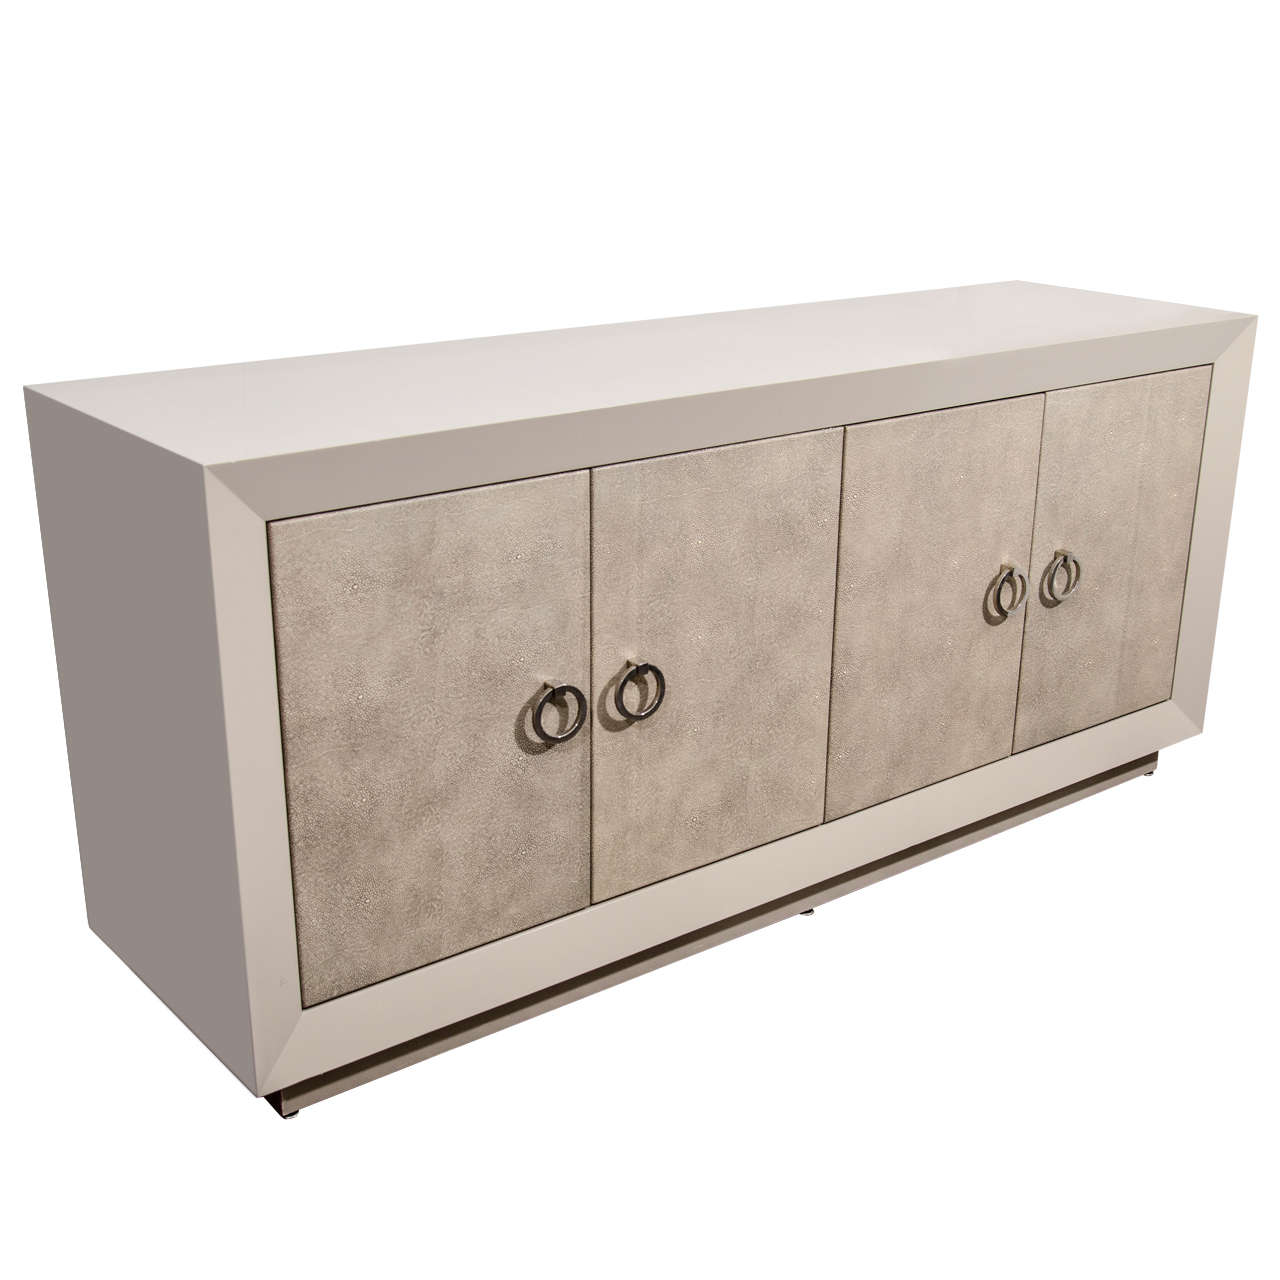 Custom Lacquer And Faux Shagreen Sideboard 1